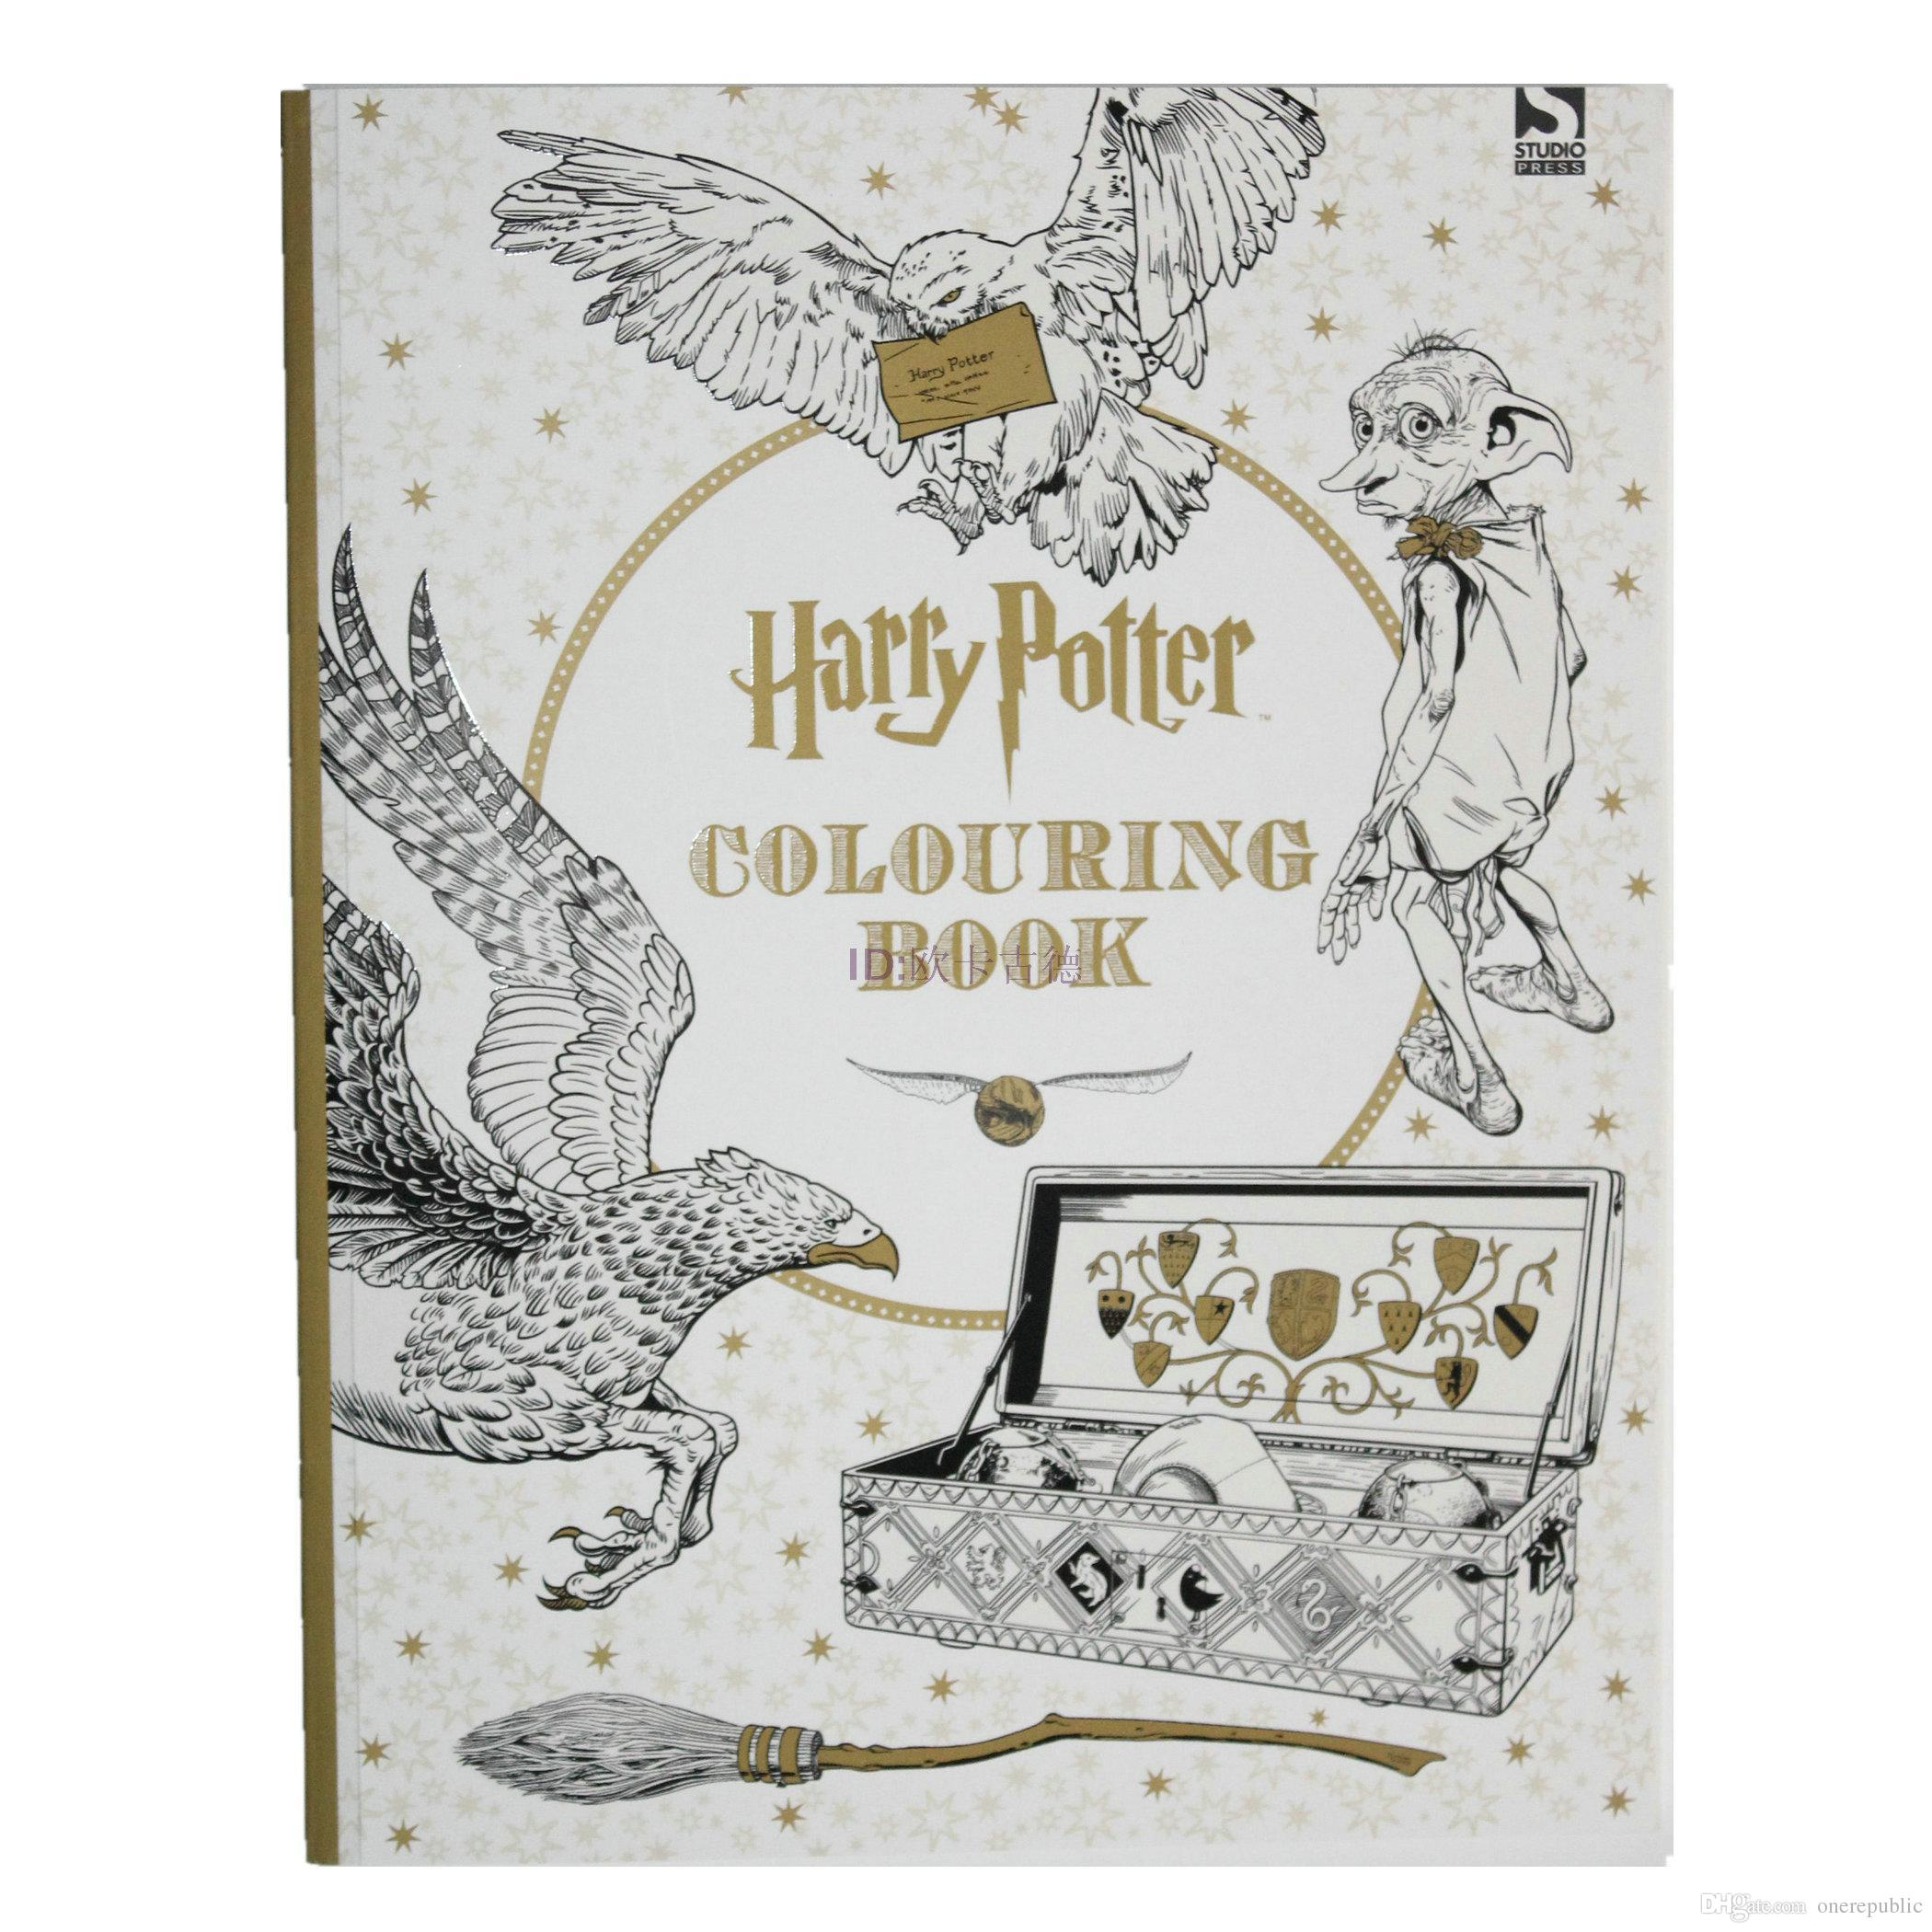 Harry Potter Coloring Book Books For Children Adult Secret Garden Series Kill Time Painting Drawing Ing Pages Boys Detailed Colouring